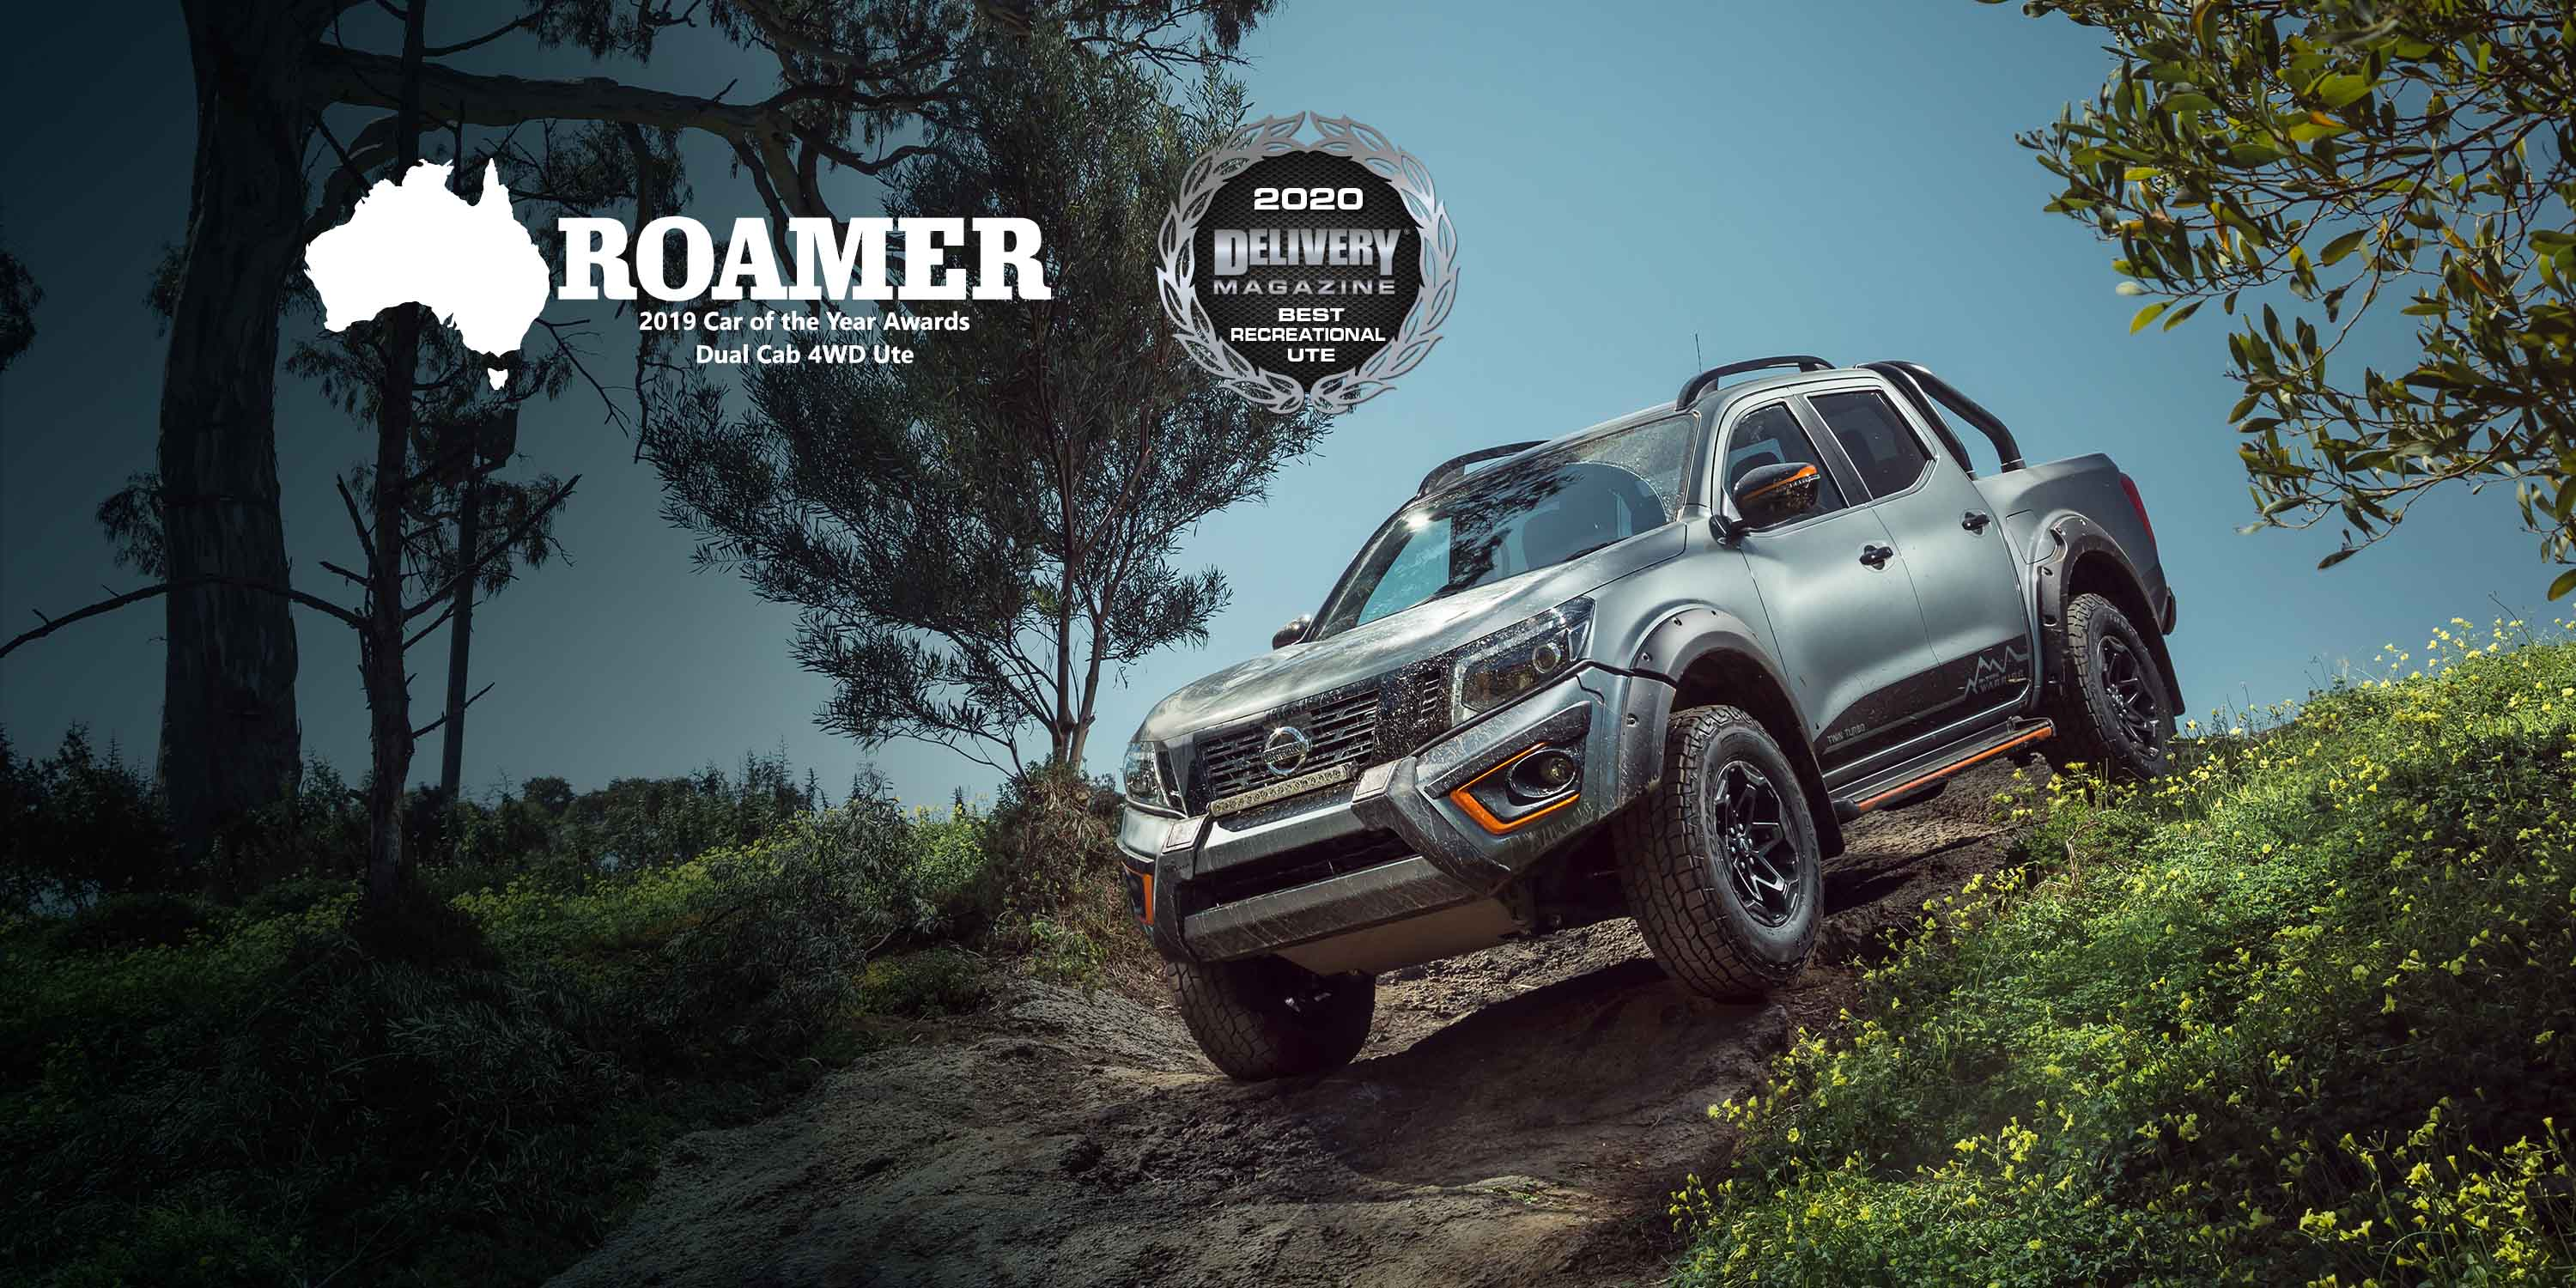 'ROAMER - 2019 Car of the Year Awards Dual Cab 4WD Ute' '2020 Delivery Magazne - Best Recreational Ute'